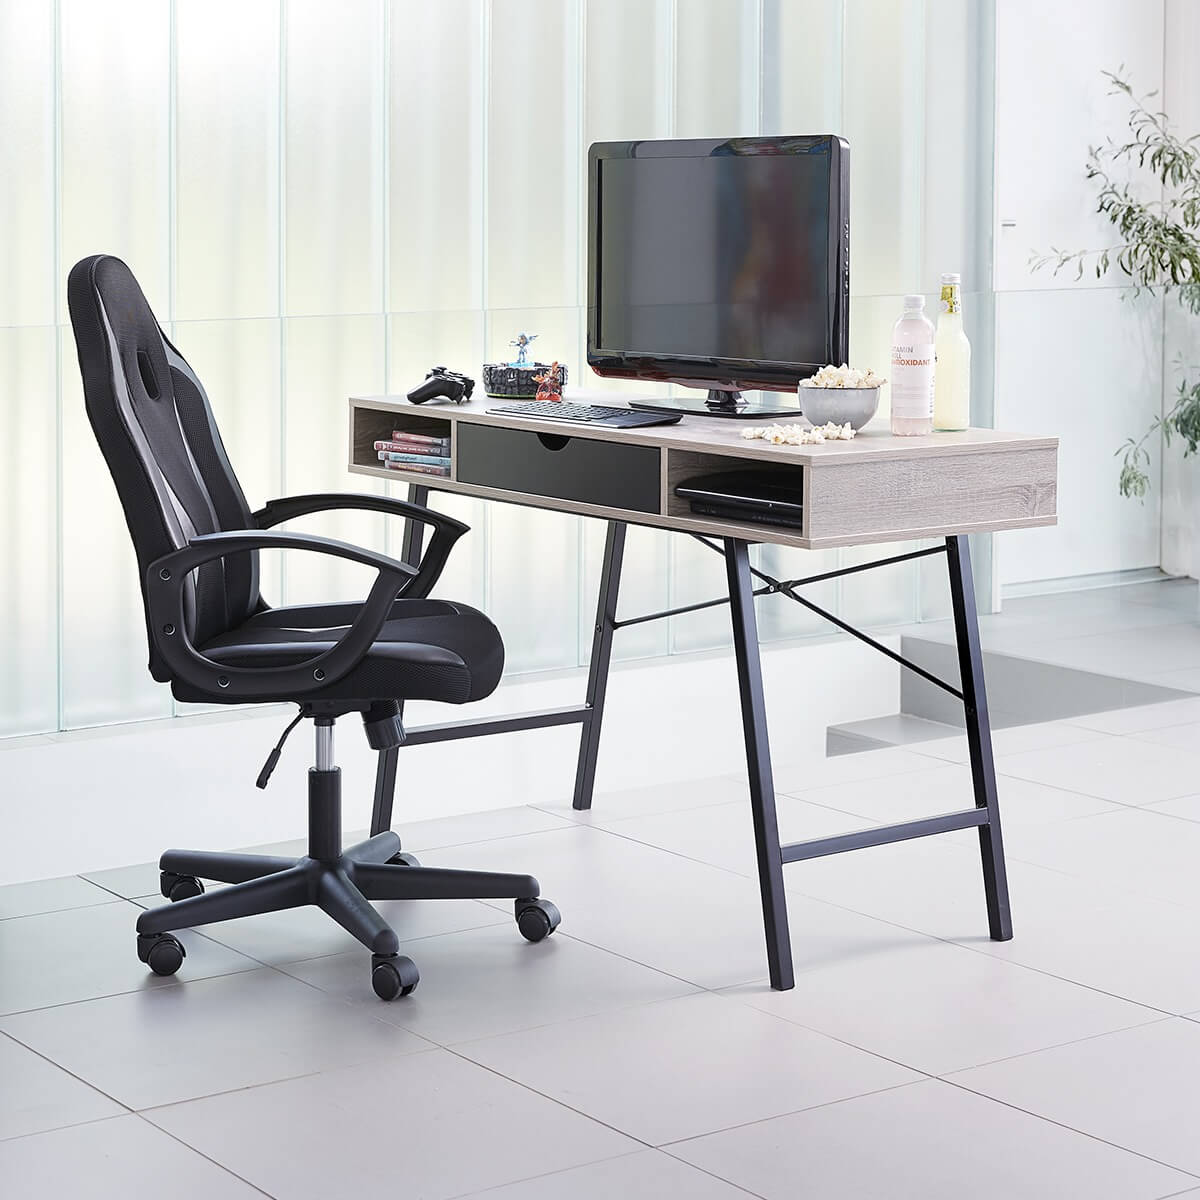 JYSK Office Chairs Review